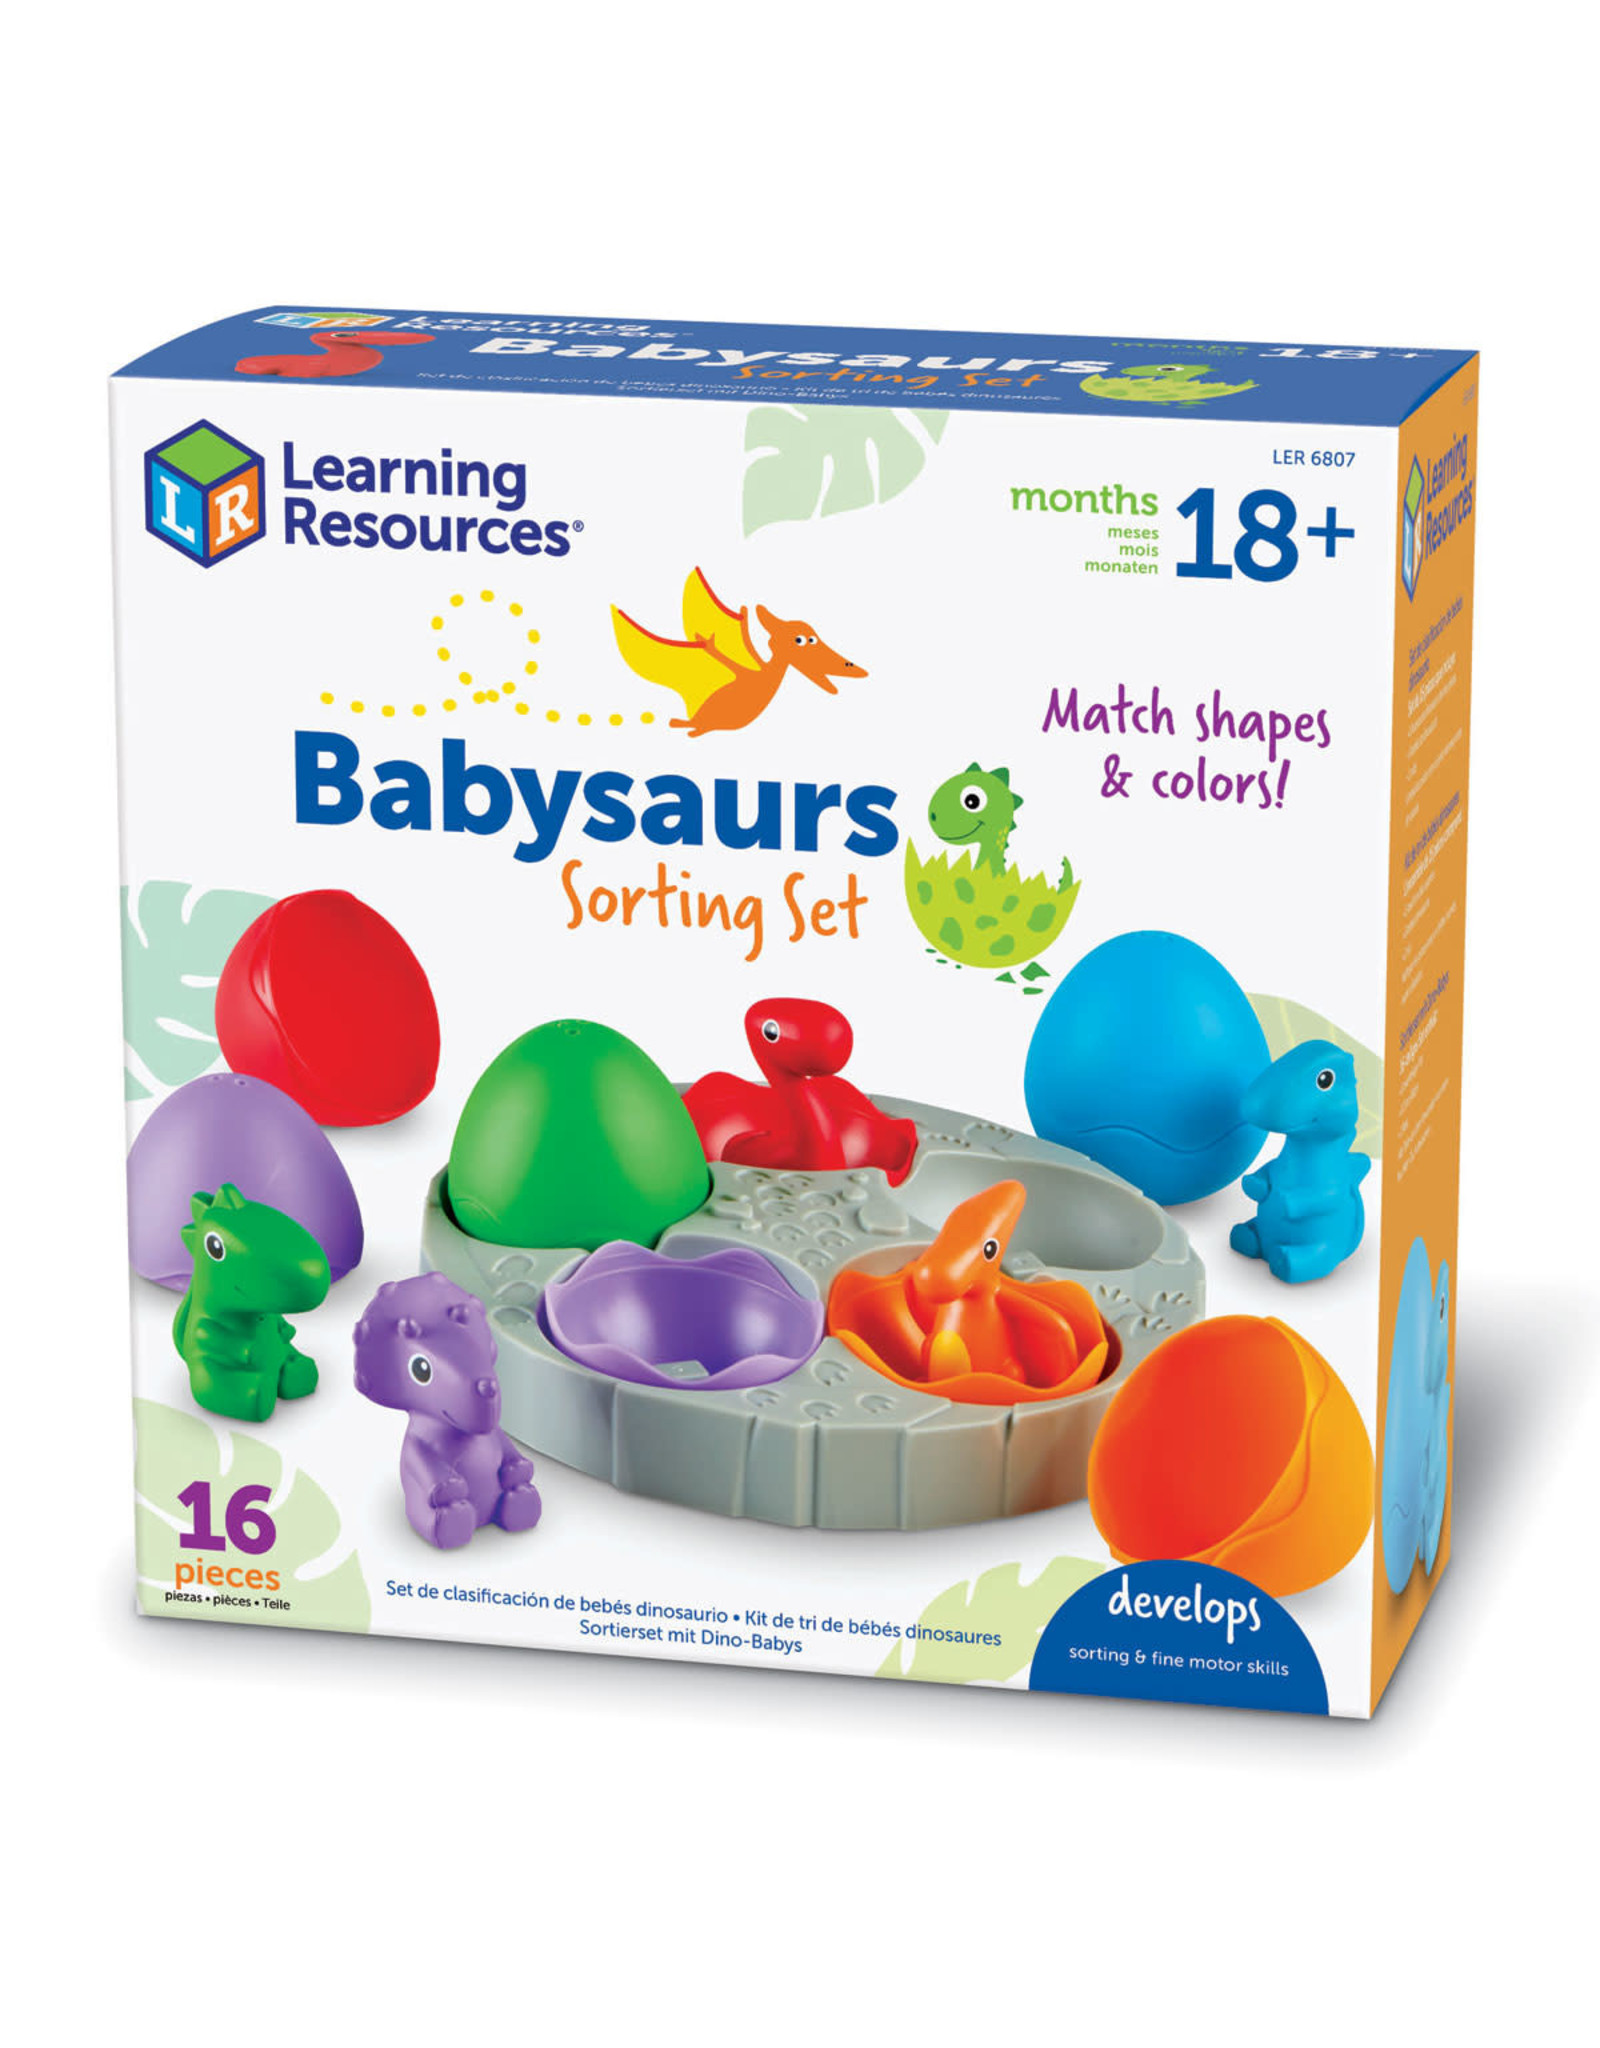 Learning Resources Dino Babies